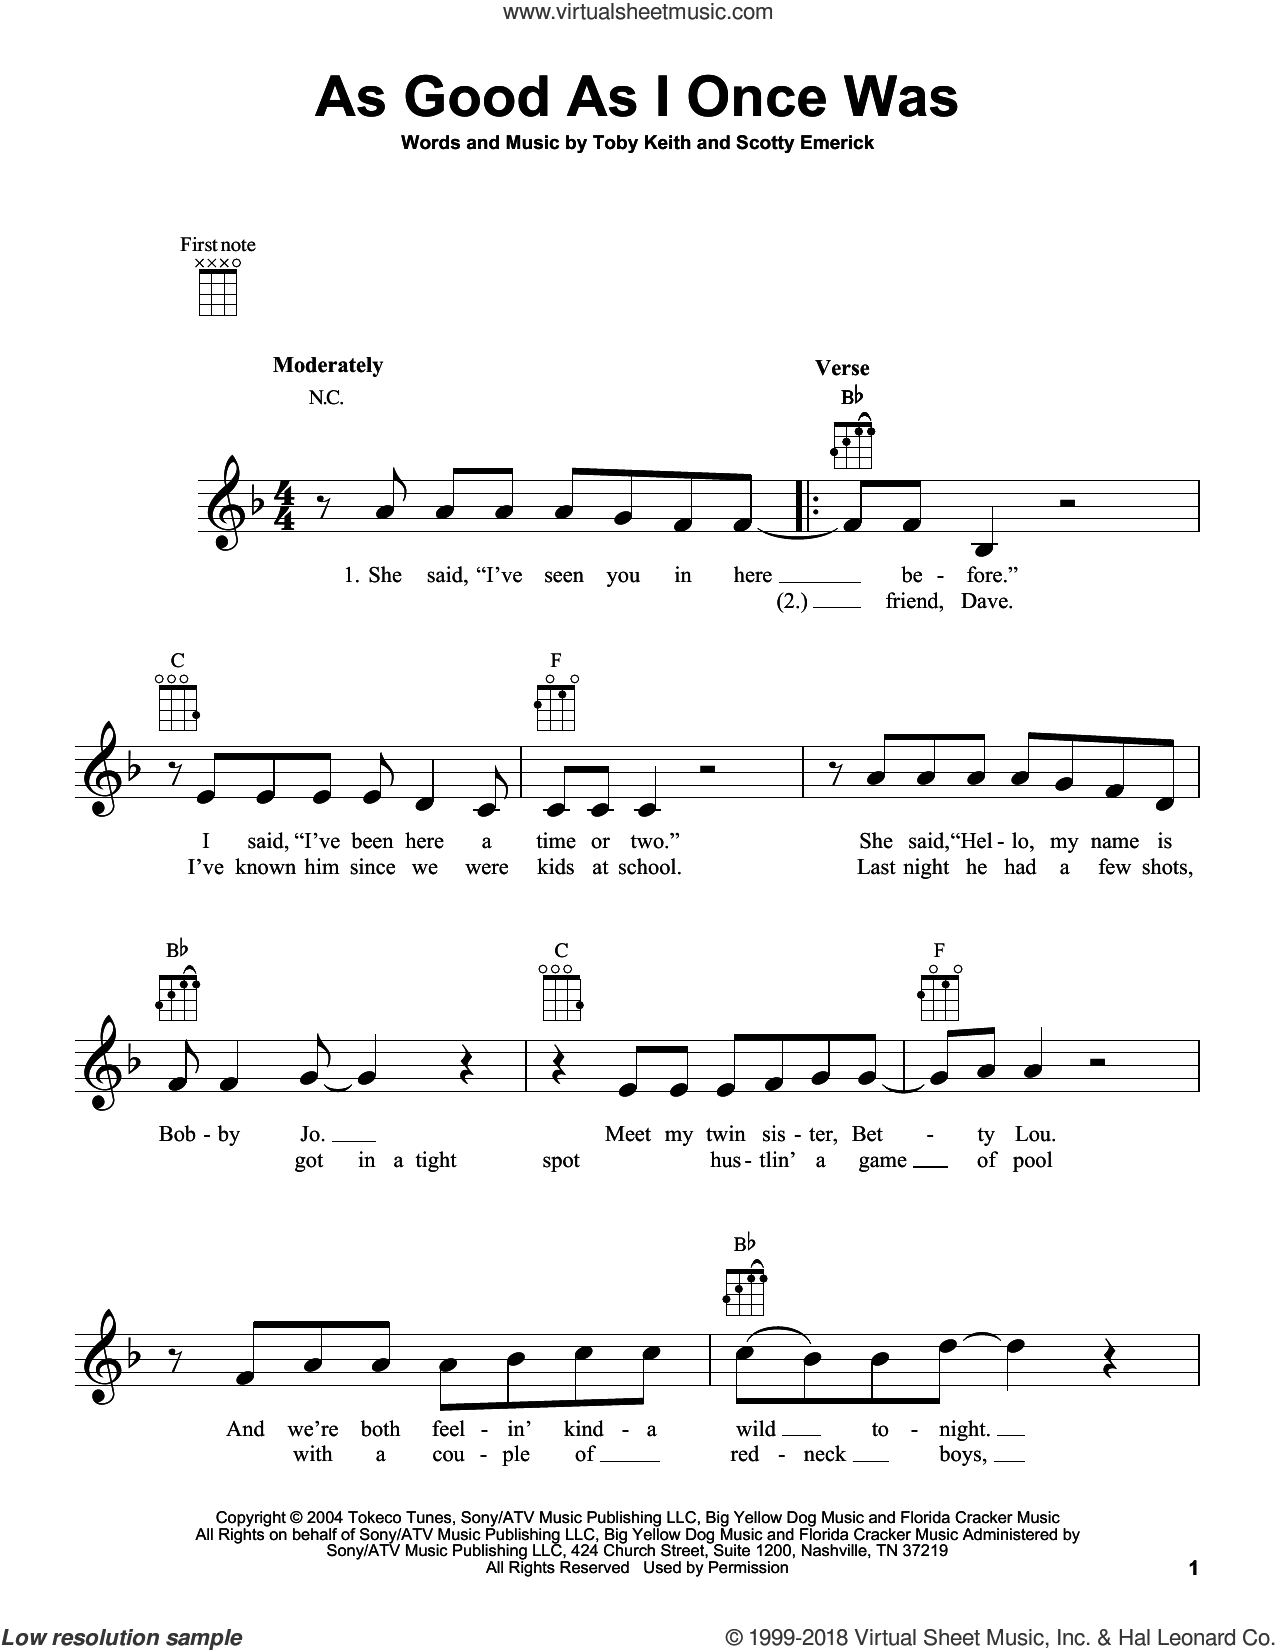 As Good As I Once Was sheet music for ukulele by Toby Keith and Scotty Emerick. Score Image Preview.